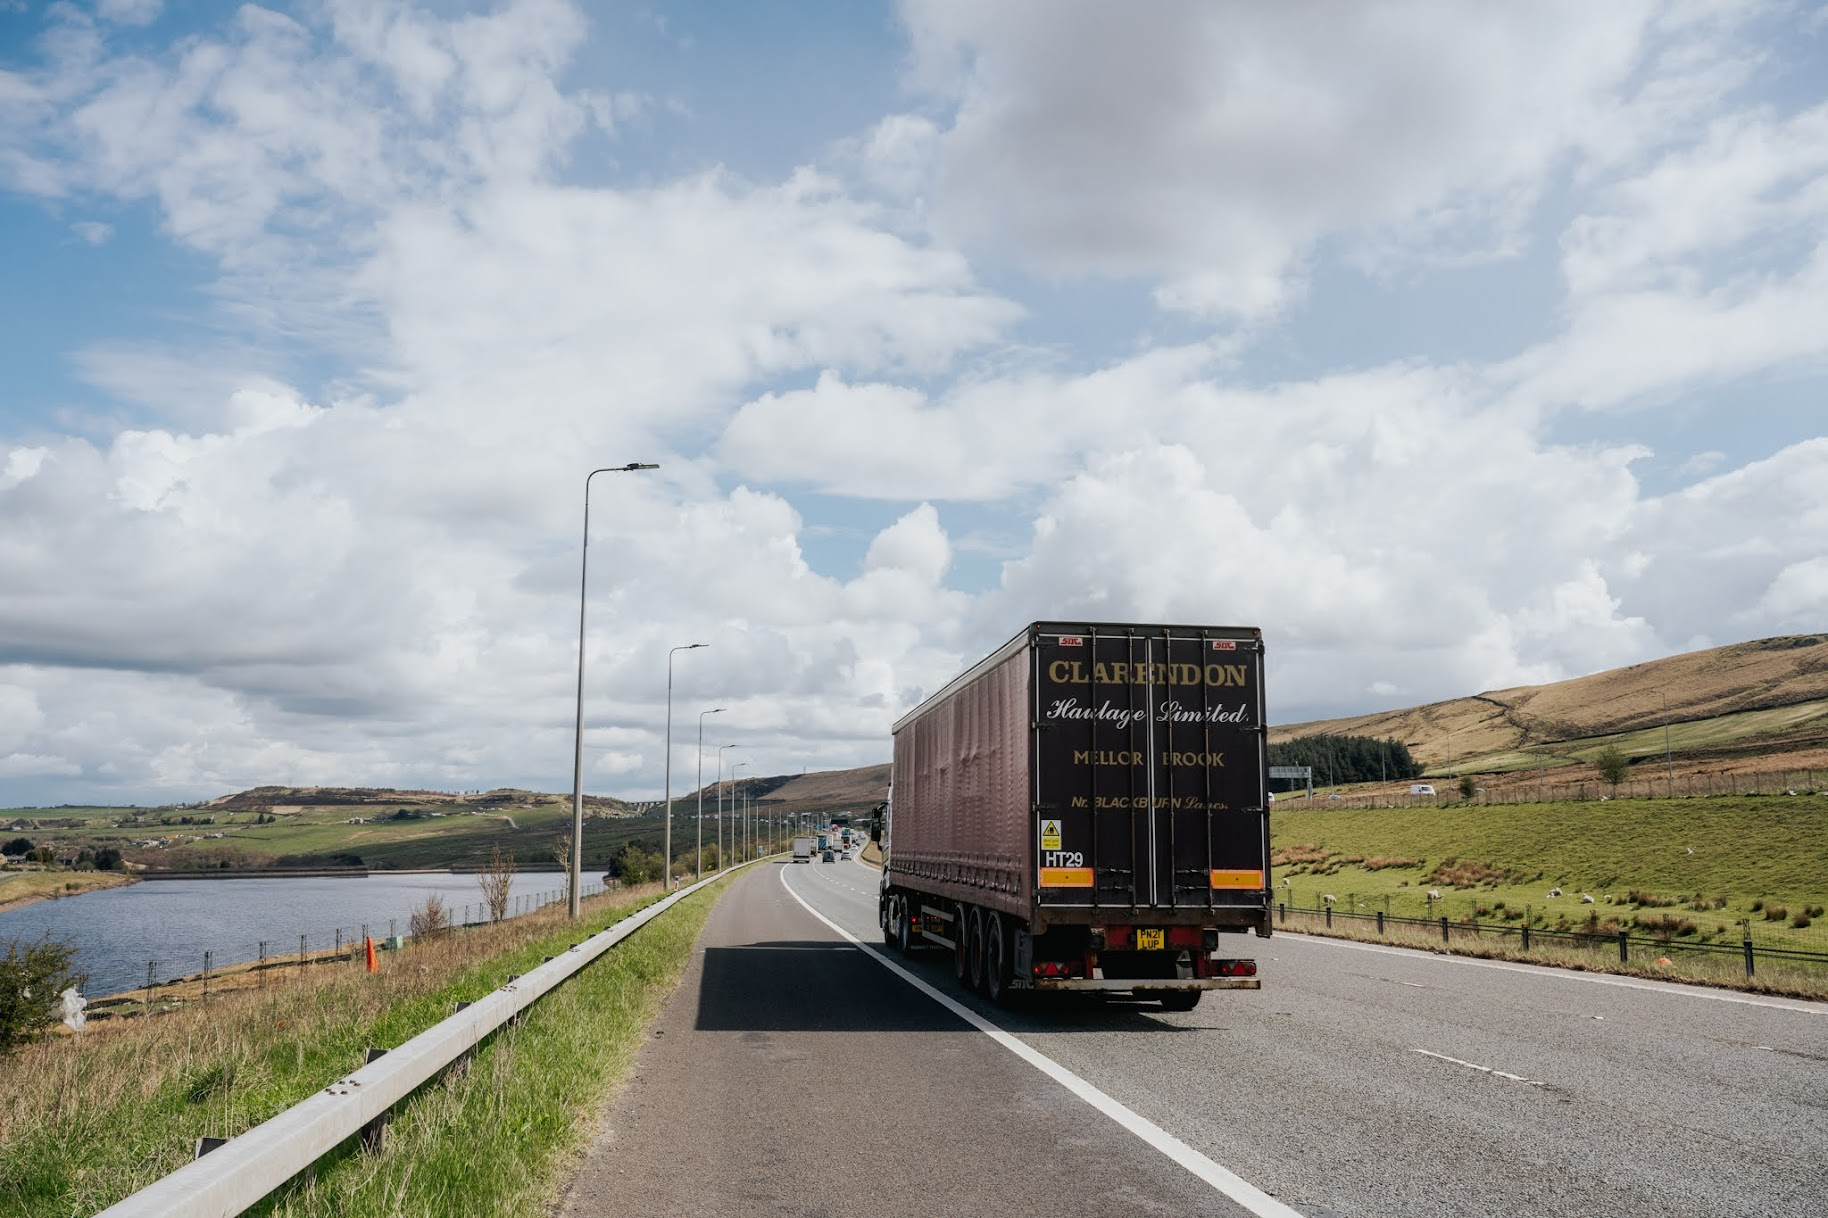 a lorry on the road